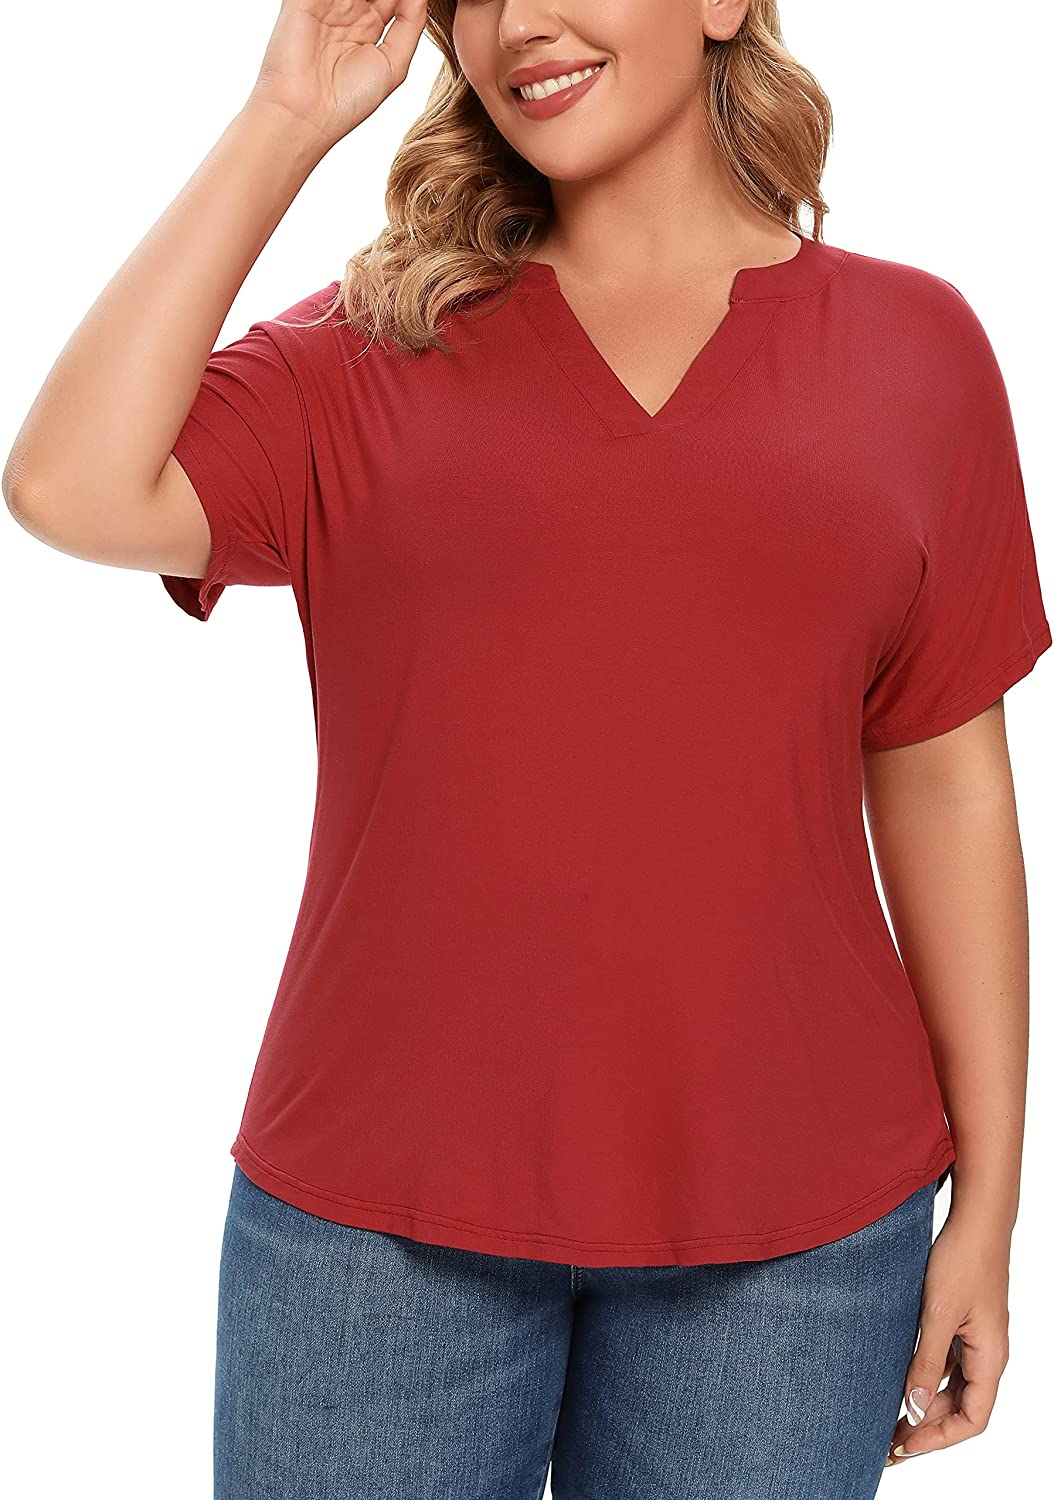 Flzzvyn Womens Plus Size Batwing Short Sleeve Pullover Henley T-Shirt Casual Tops Summer Blouse(Wine Red,4X)